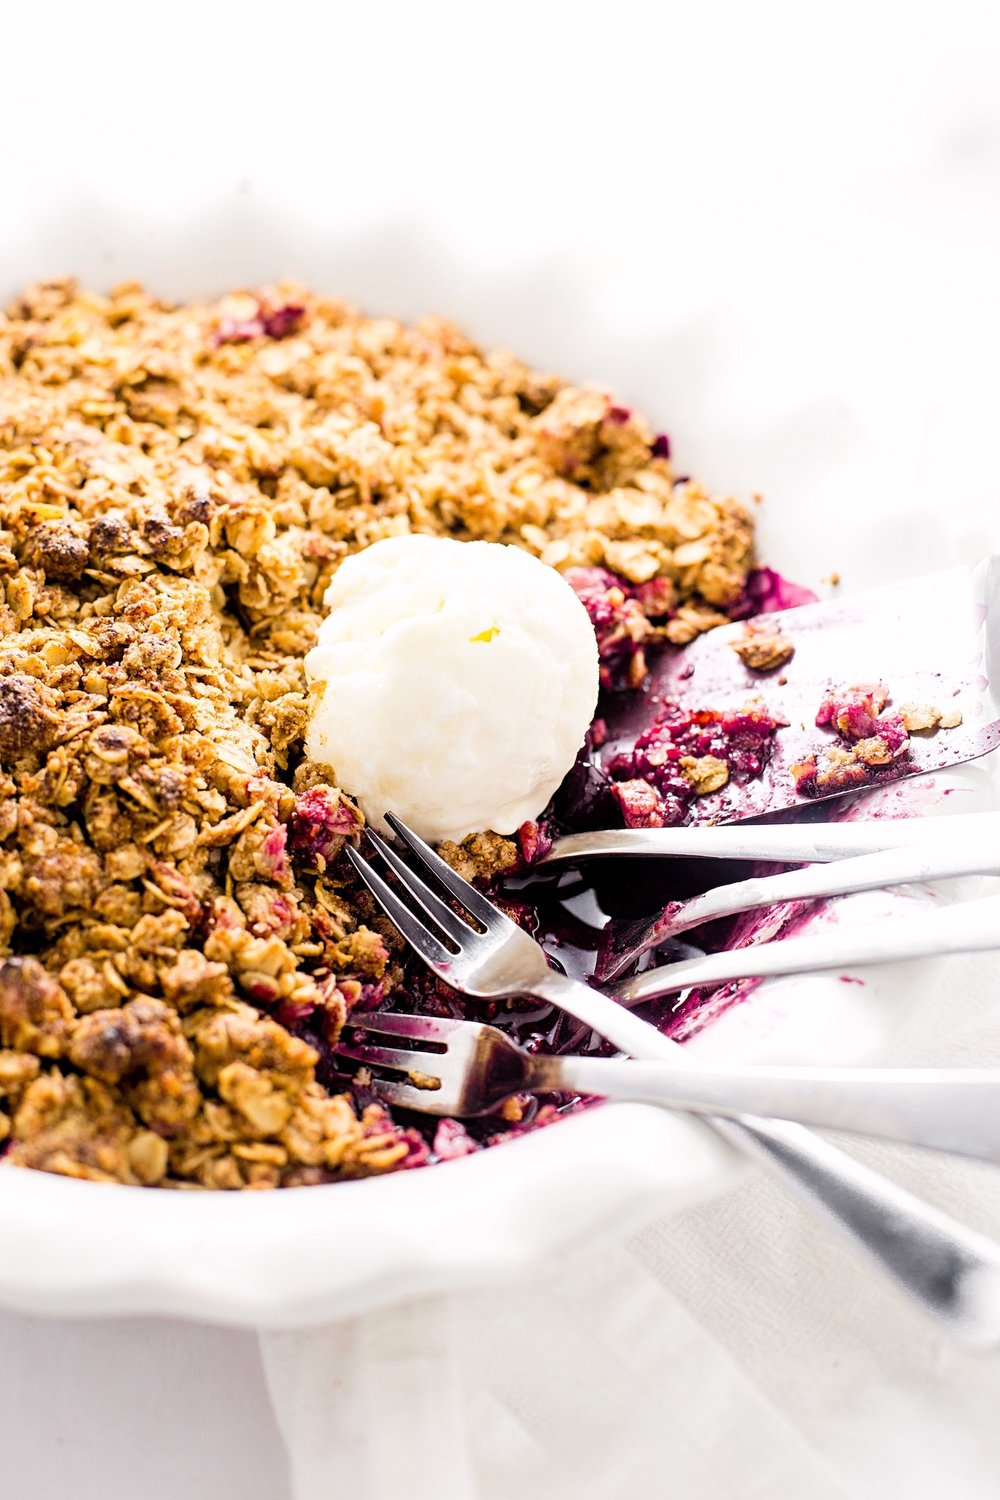 Wholesome Gluten-Free Mixed Berry Crumble : tart, sweet berries topped with an oaty, nutty, delicious crumble. Gluten-free and refined sugar free!